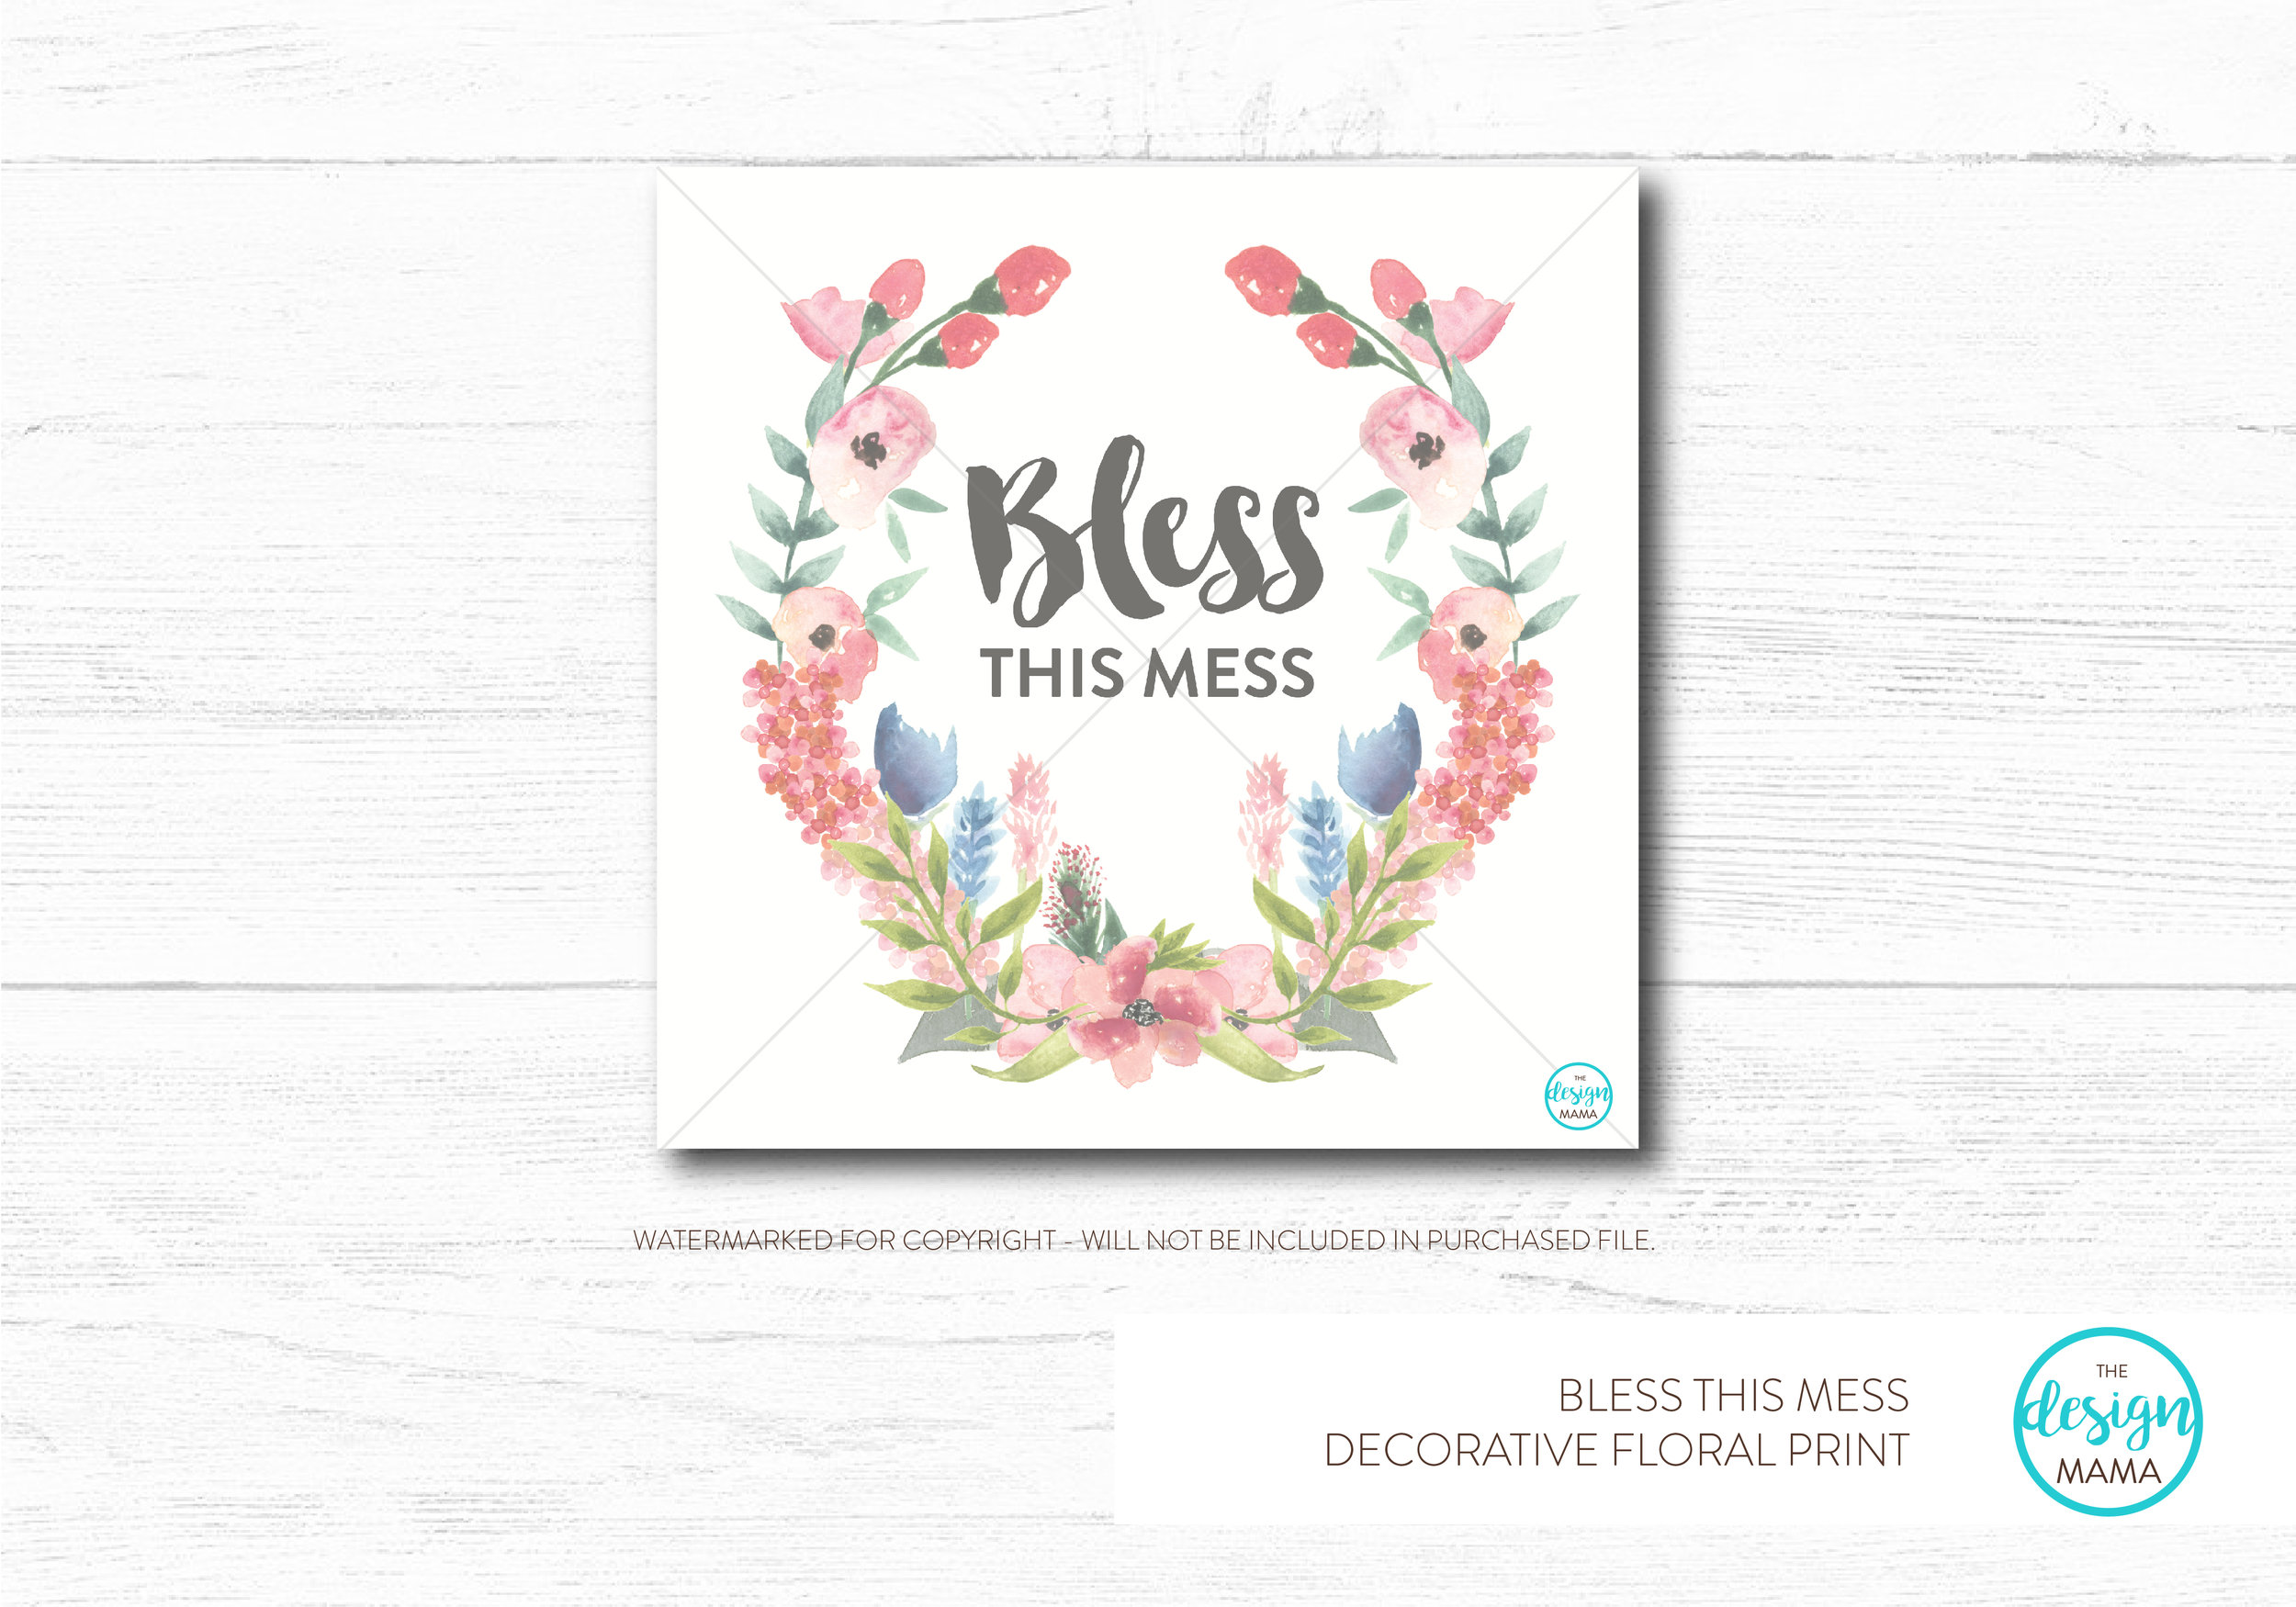 NEW - BLESS THIS MESS